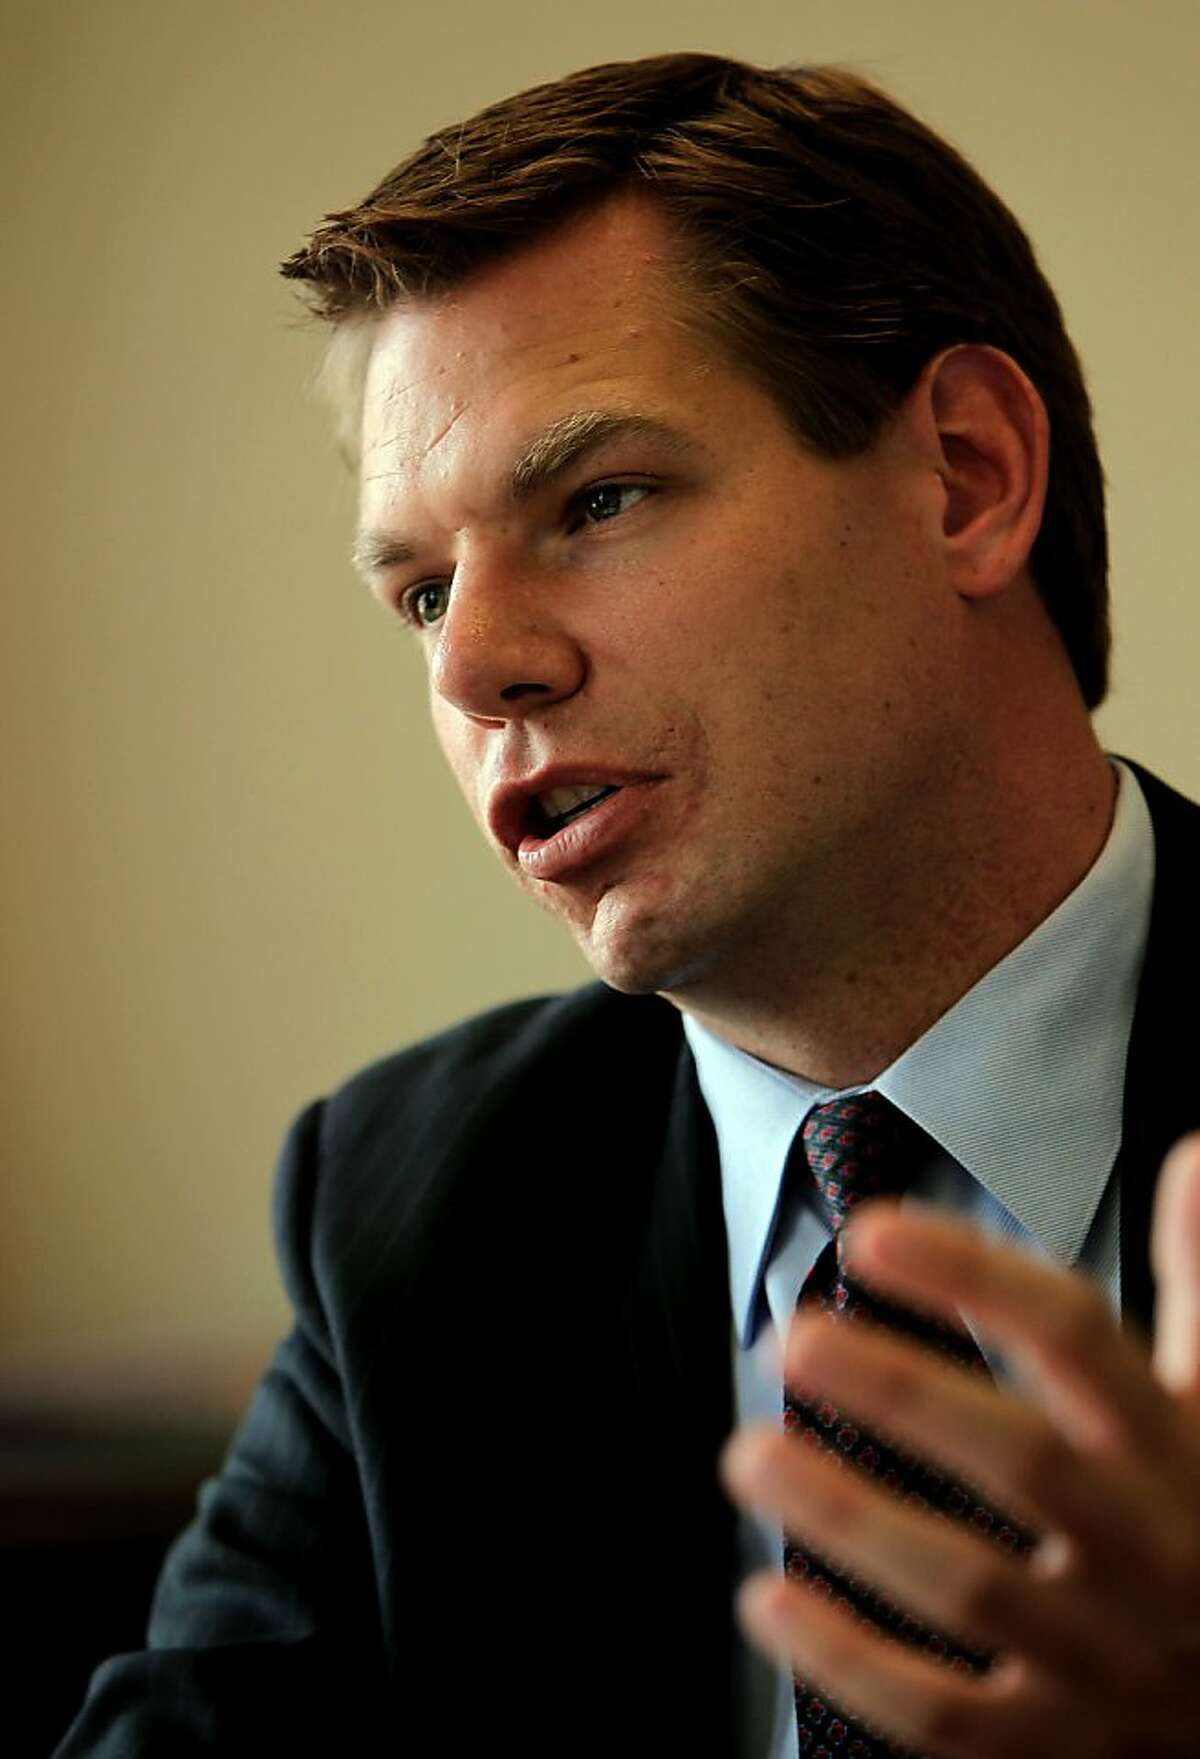 Dublin councilman and Alameda County prosecutor Eric Swalwell on Wednesday May 2, 2012, in San Francisco, Ca., is challenging Rep. Pete Stark, D-Fremont, for his 15th Congressional District seat